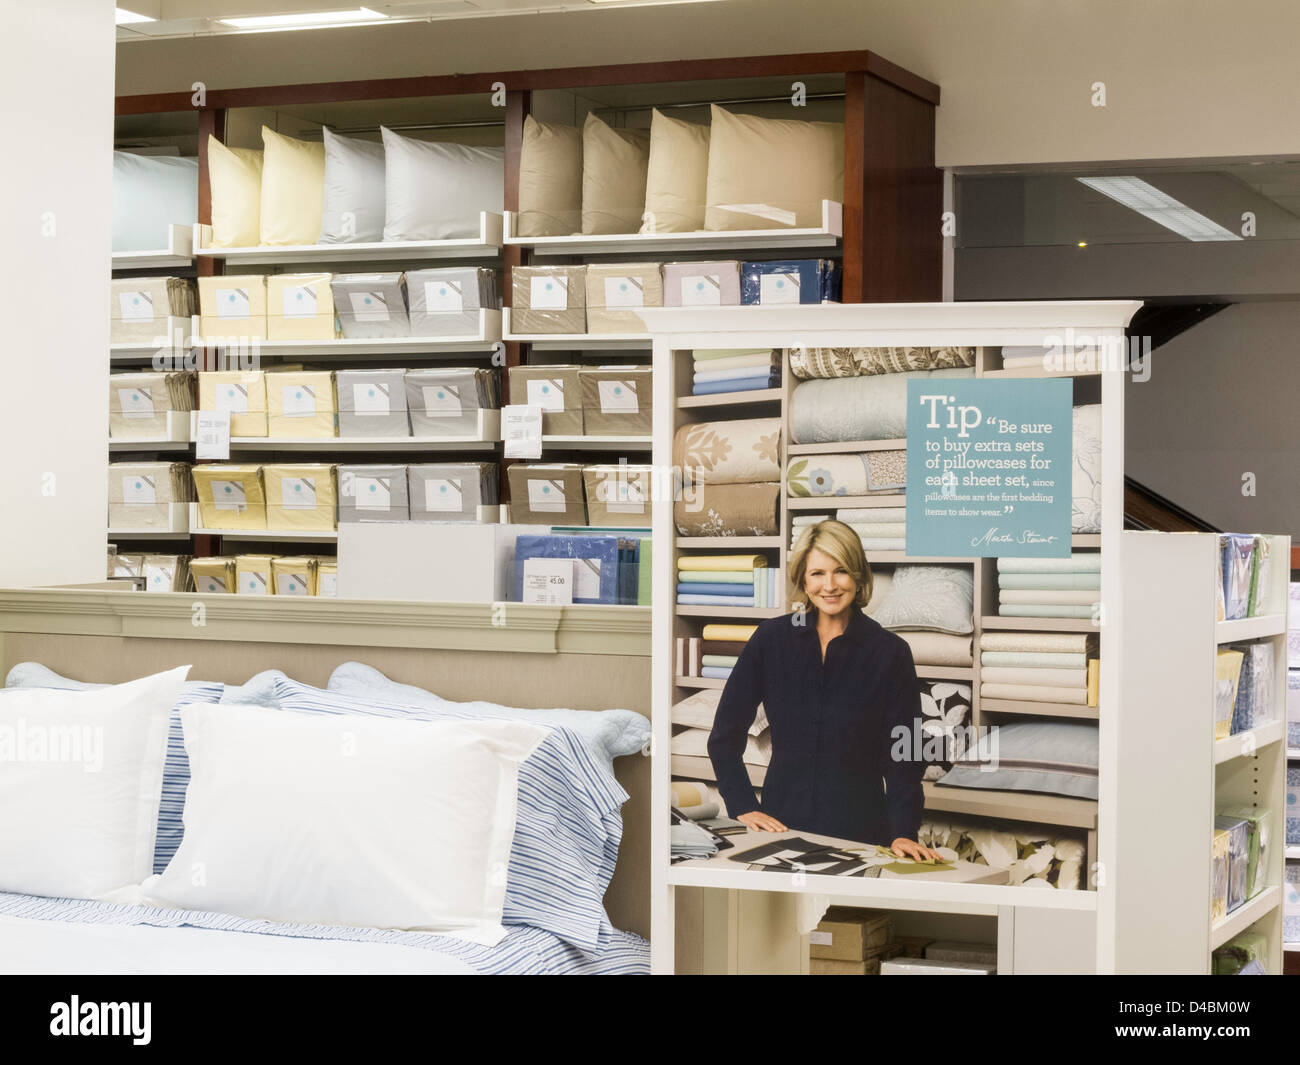 Macy S Department Store Bedding Department Herald Square